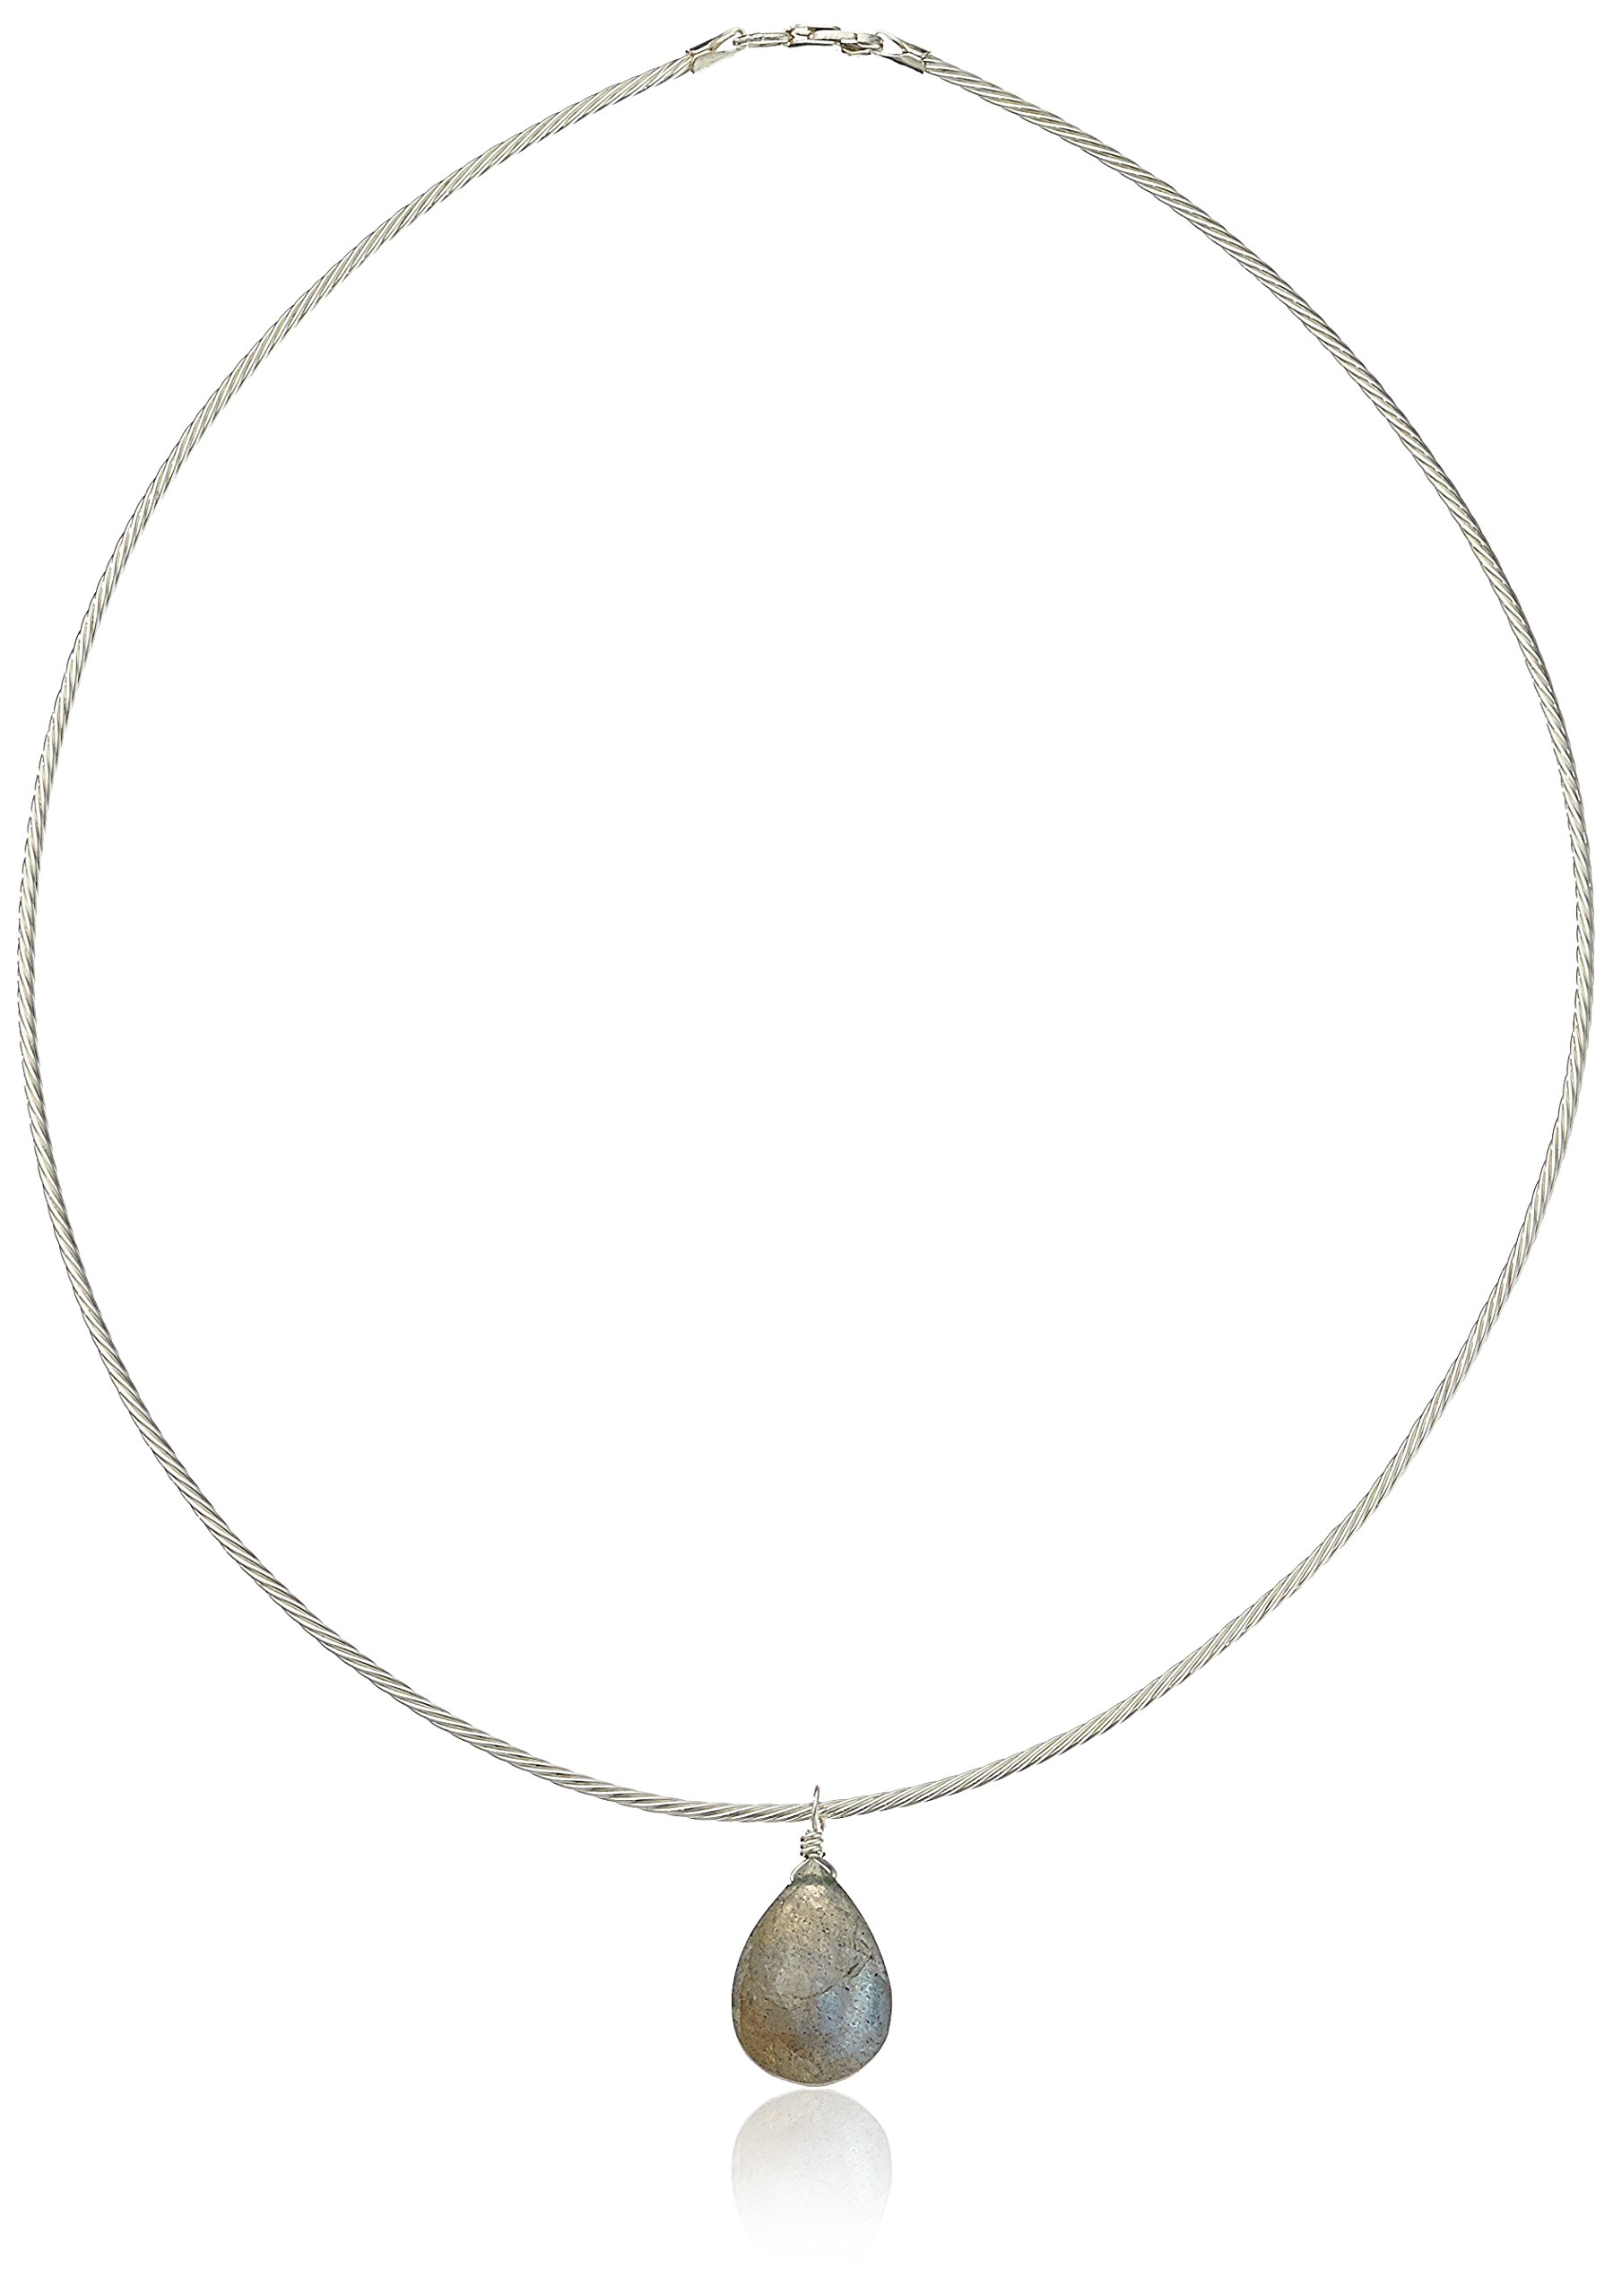 Faceted Labradorite Pendant Sterling Silver Chocker Chord Choker Necklace, 16''